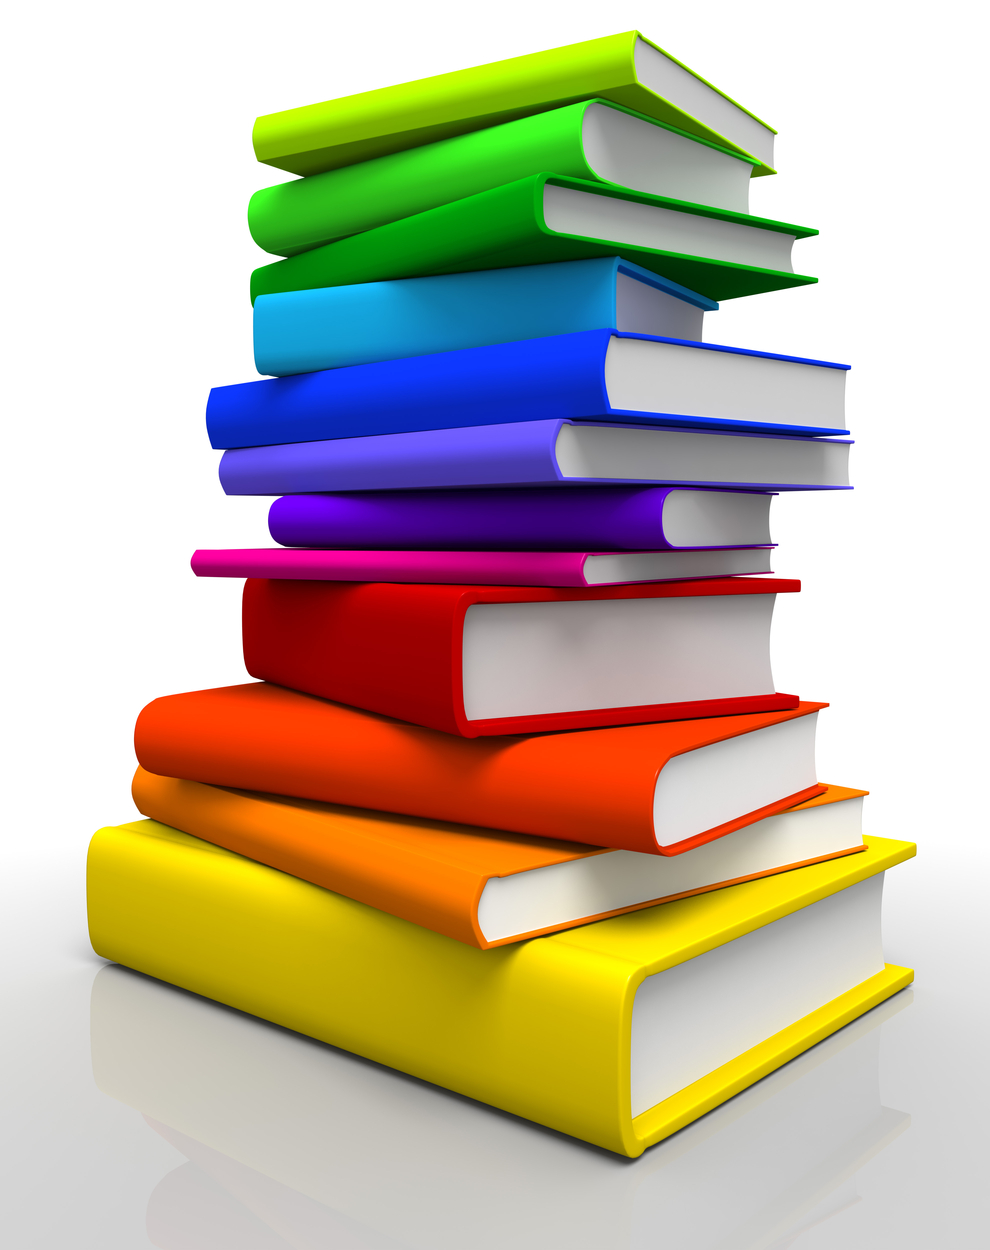 Rainbow Colors Book Stack 2492.03 Kb